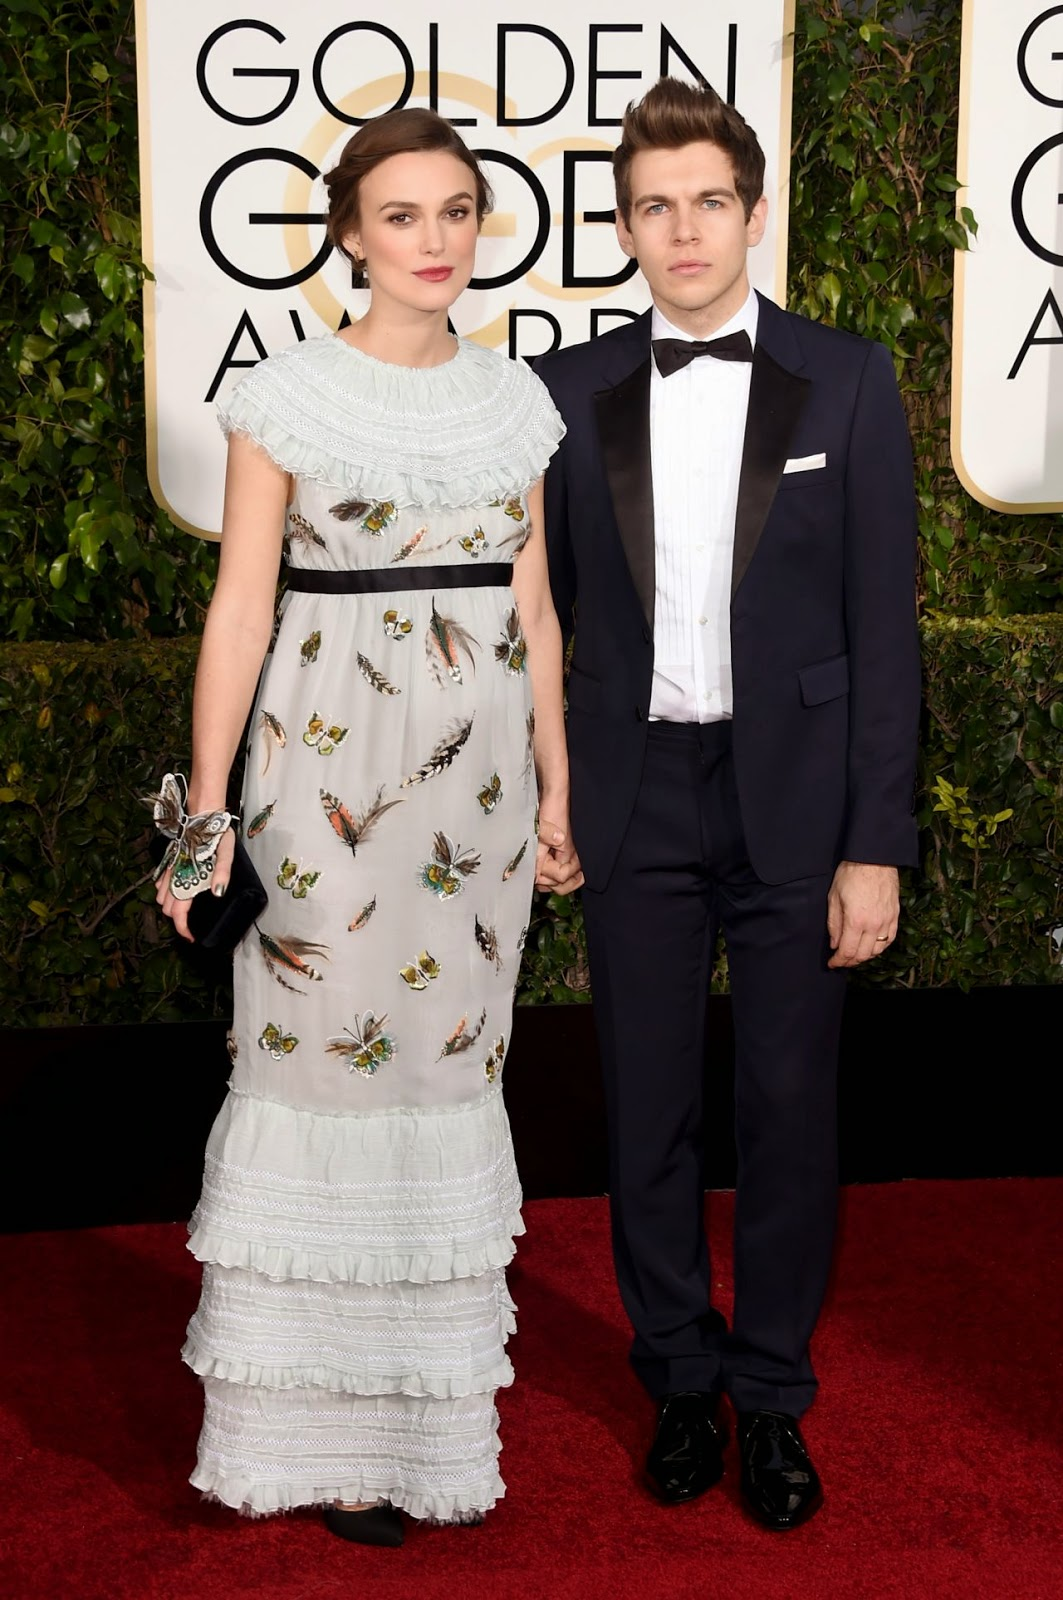 Keira Knightley flatters baby bump in Chanel at the 2015 Golden Globes